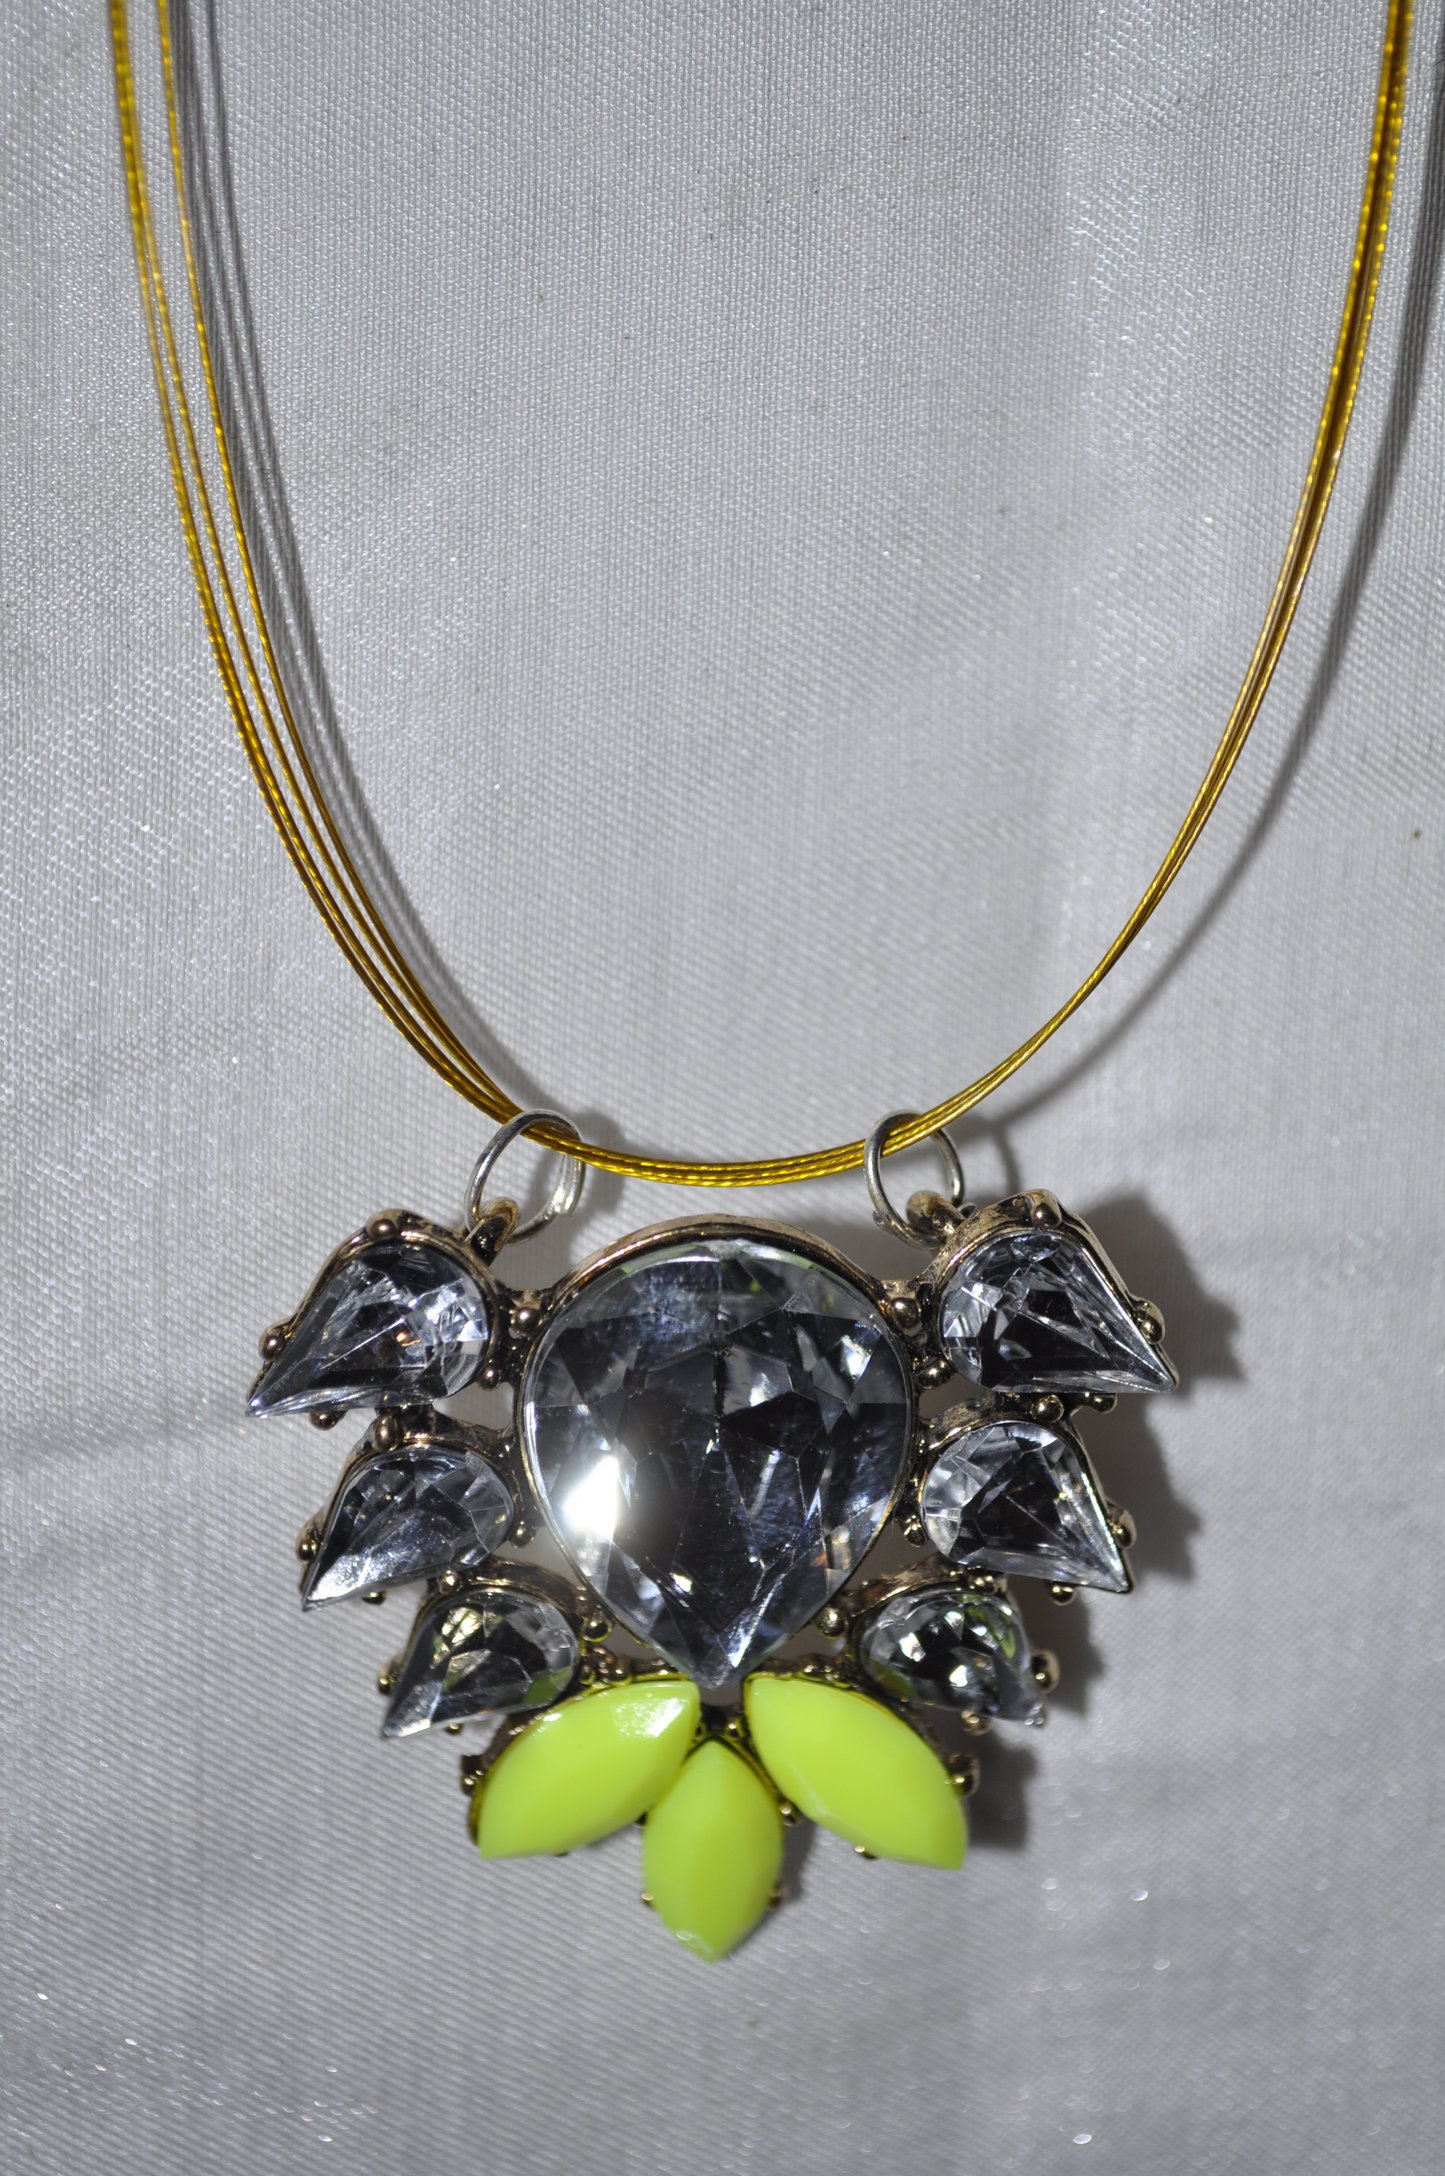 CLEAR AND LIME STONE added to a gold neck rope.